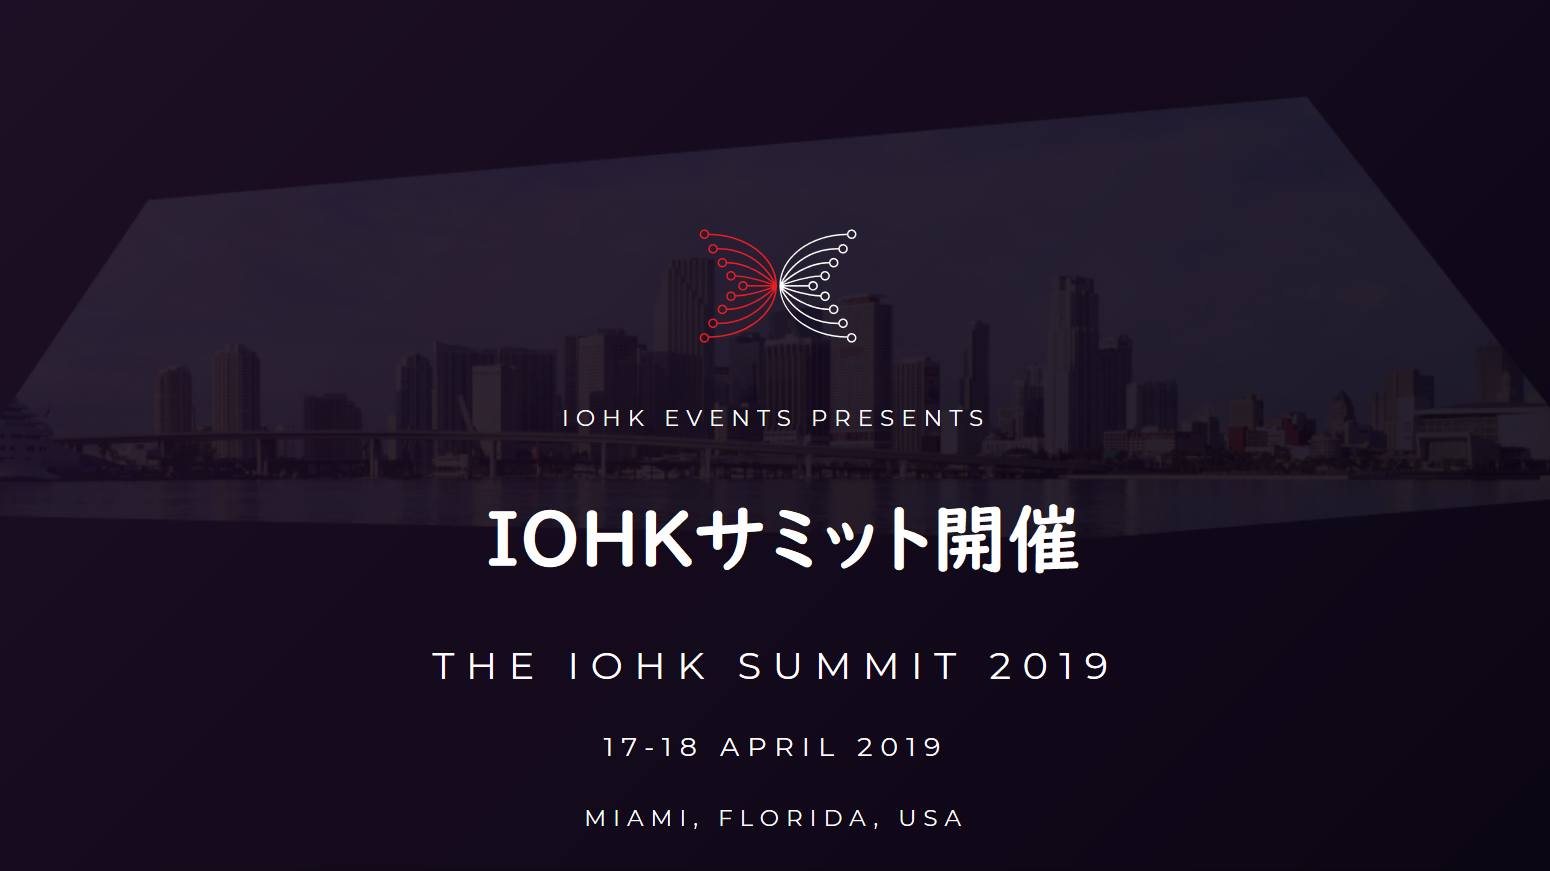 The IOHK Summit 2019